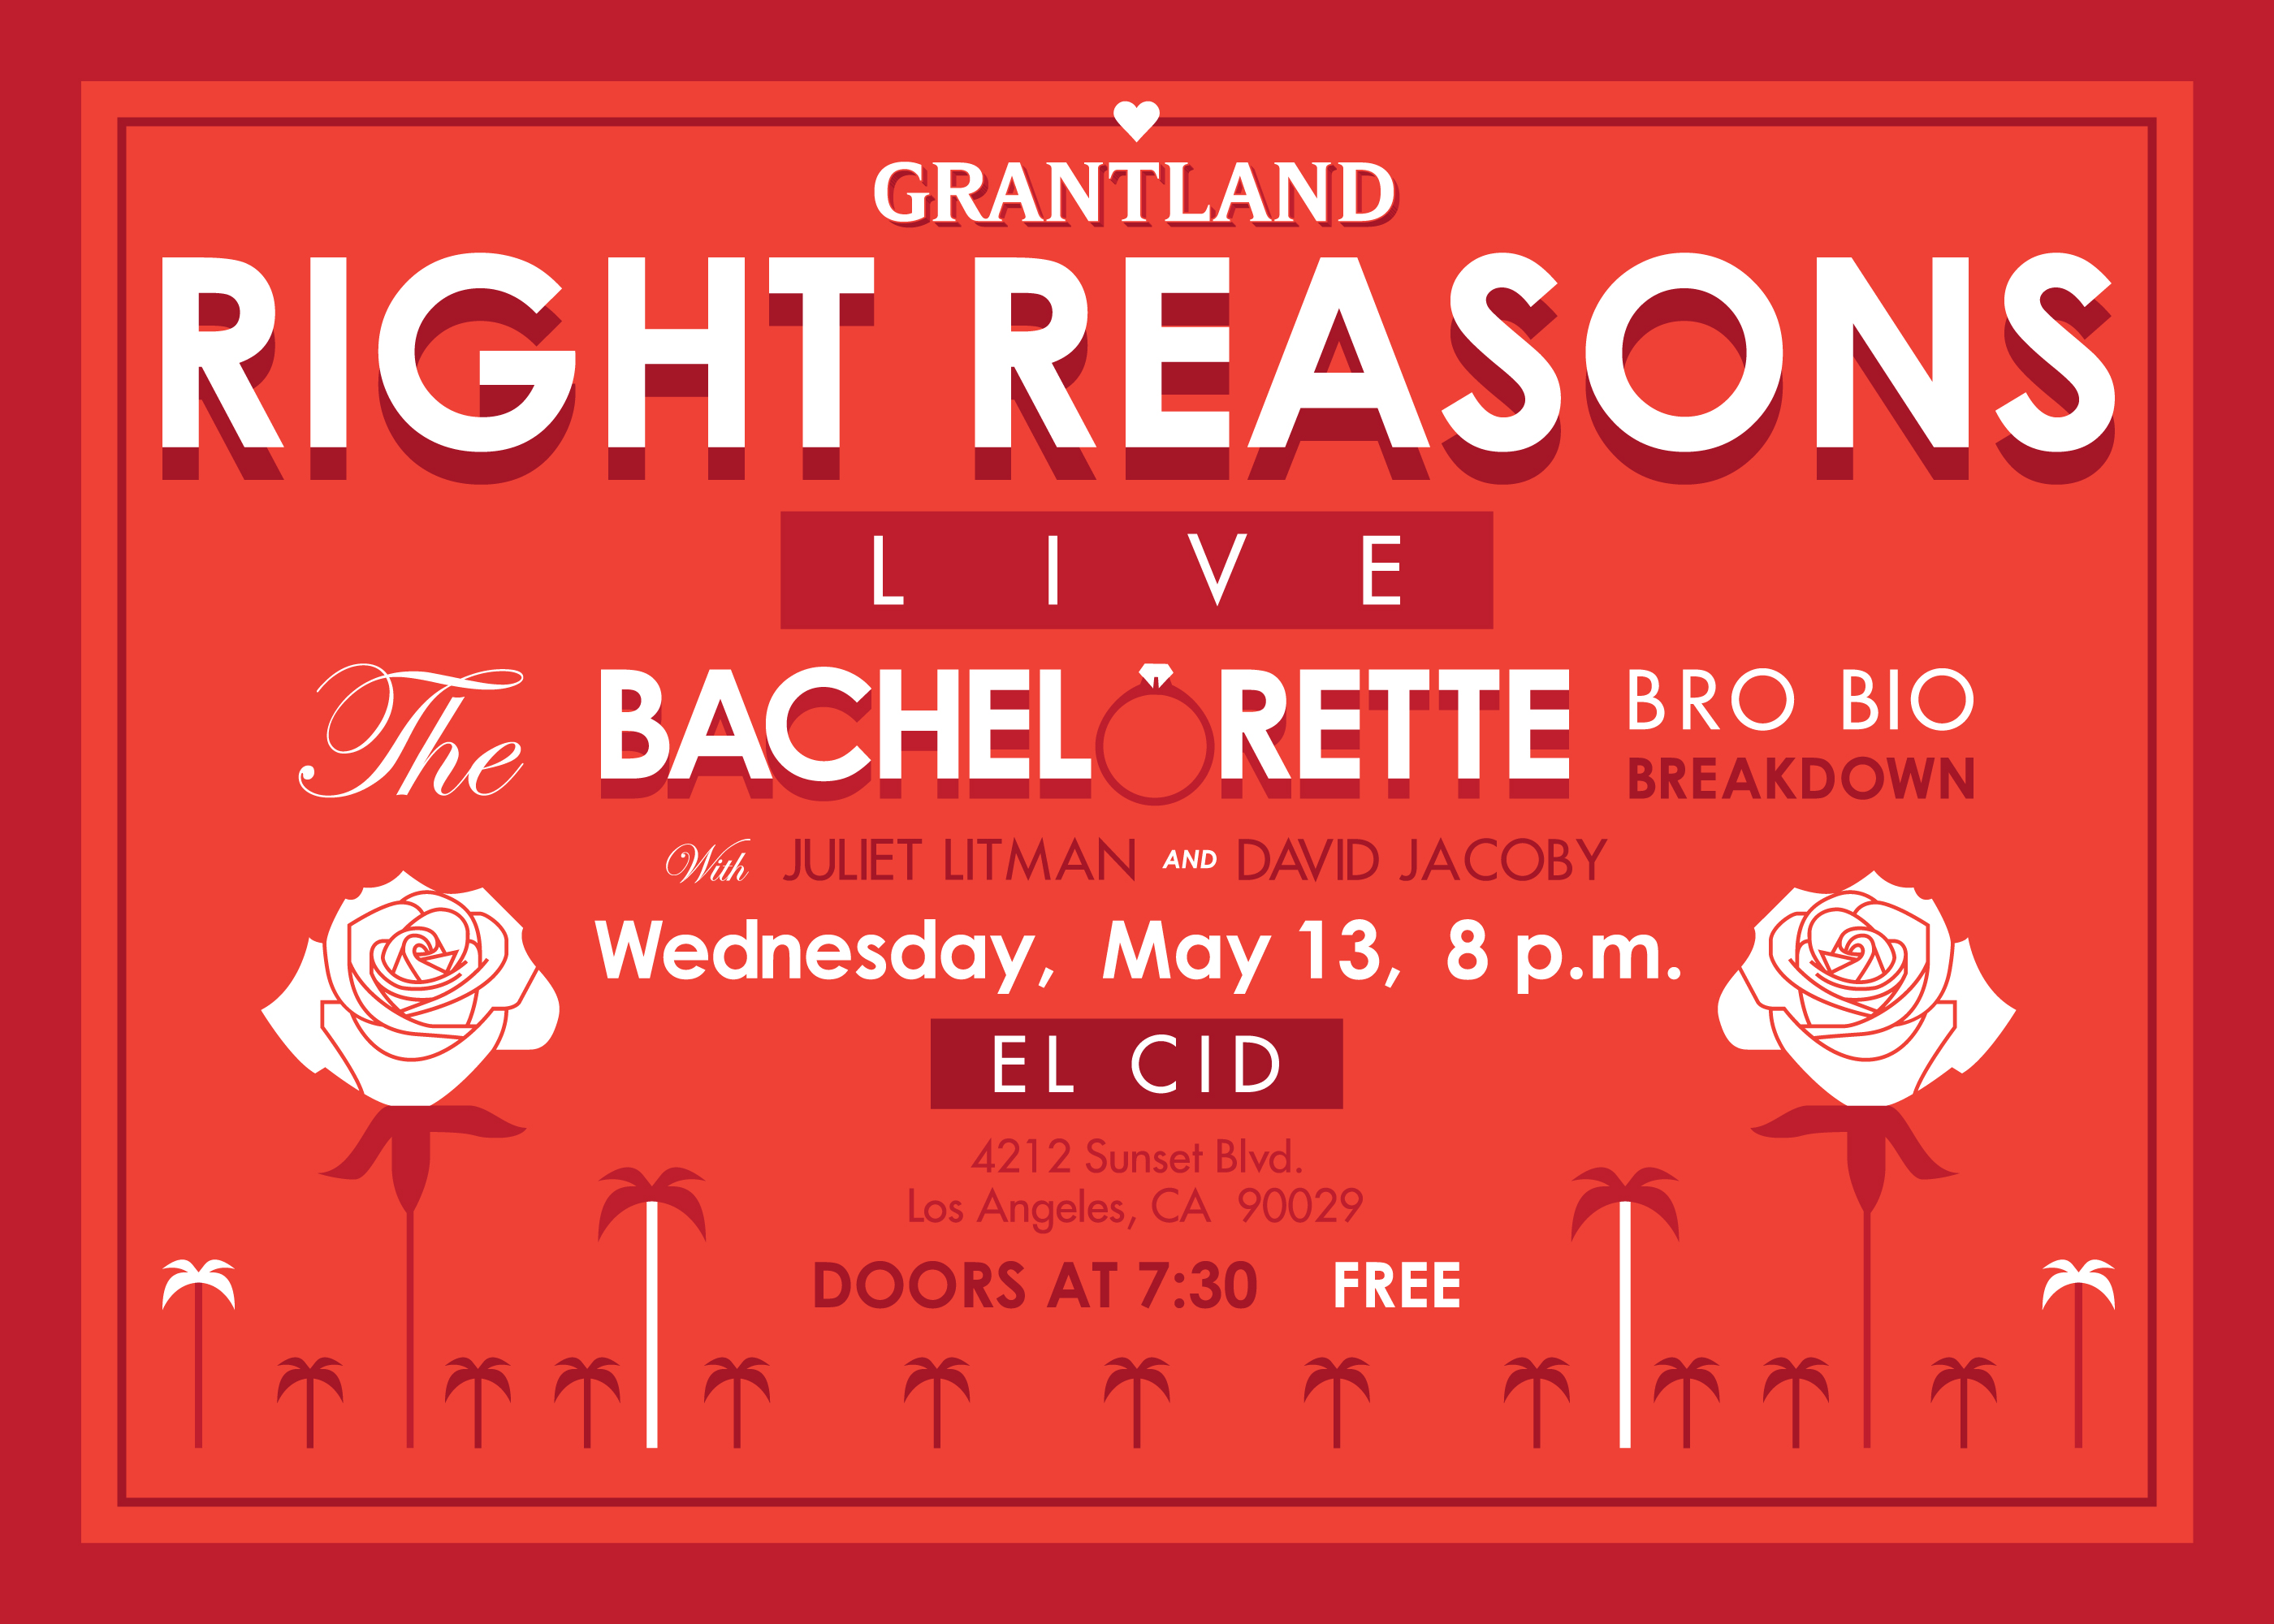 Right Reasons Flyer 02